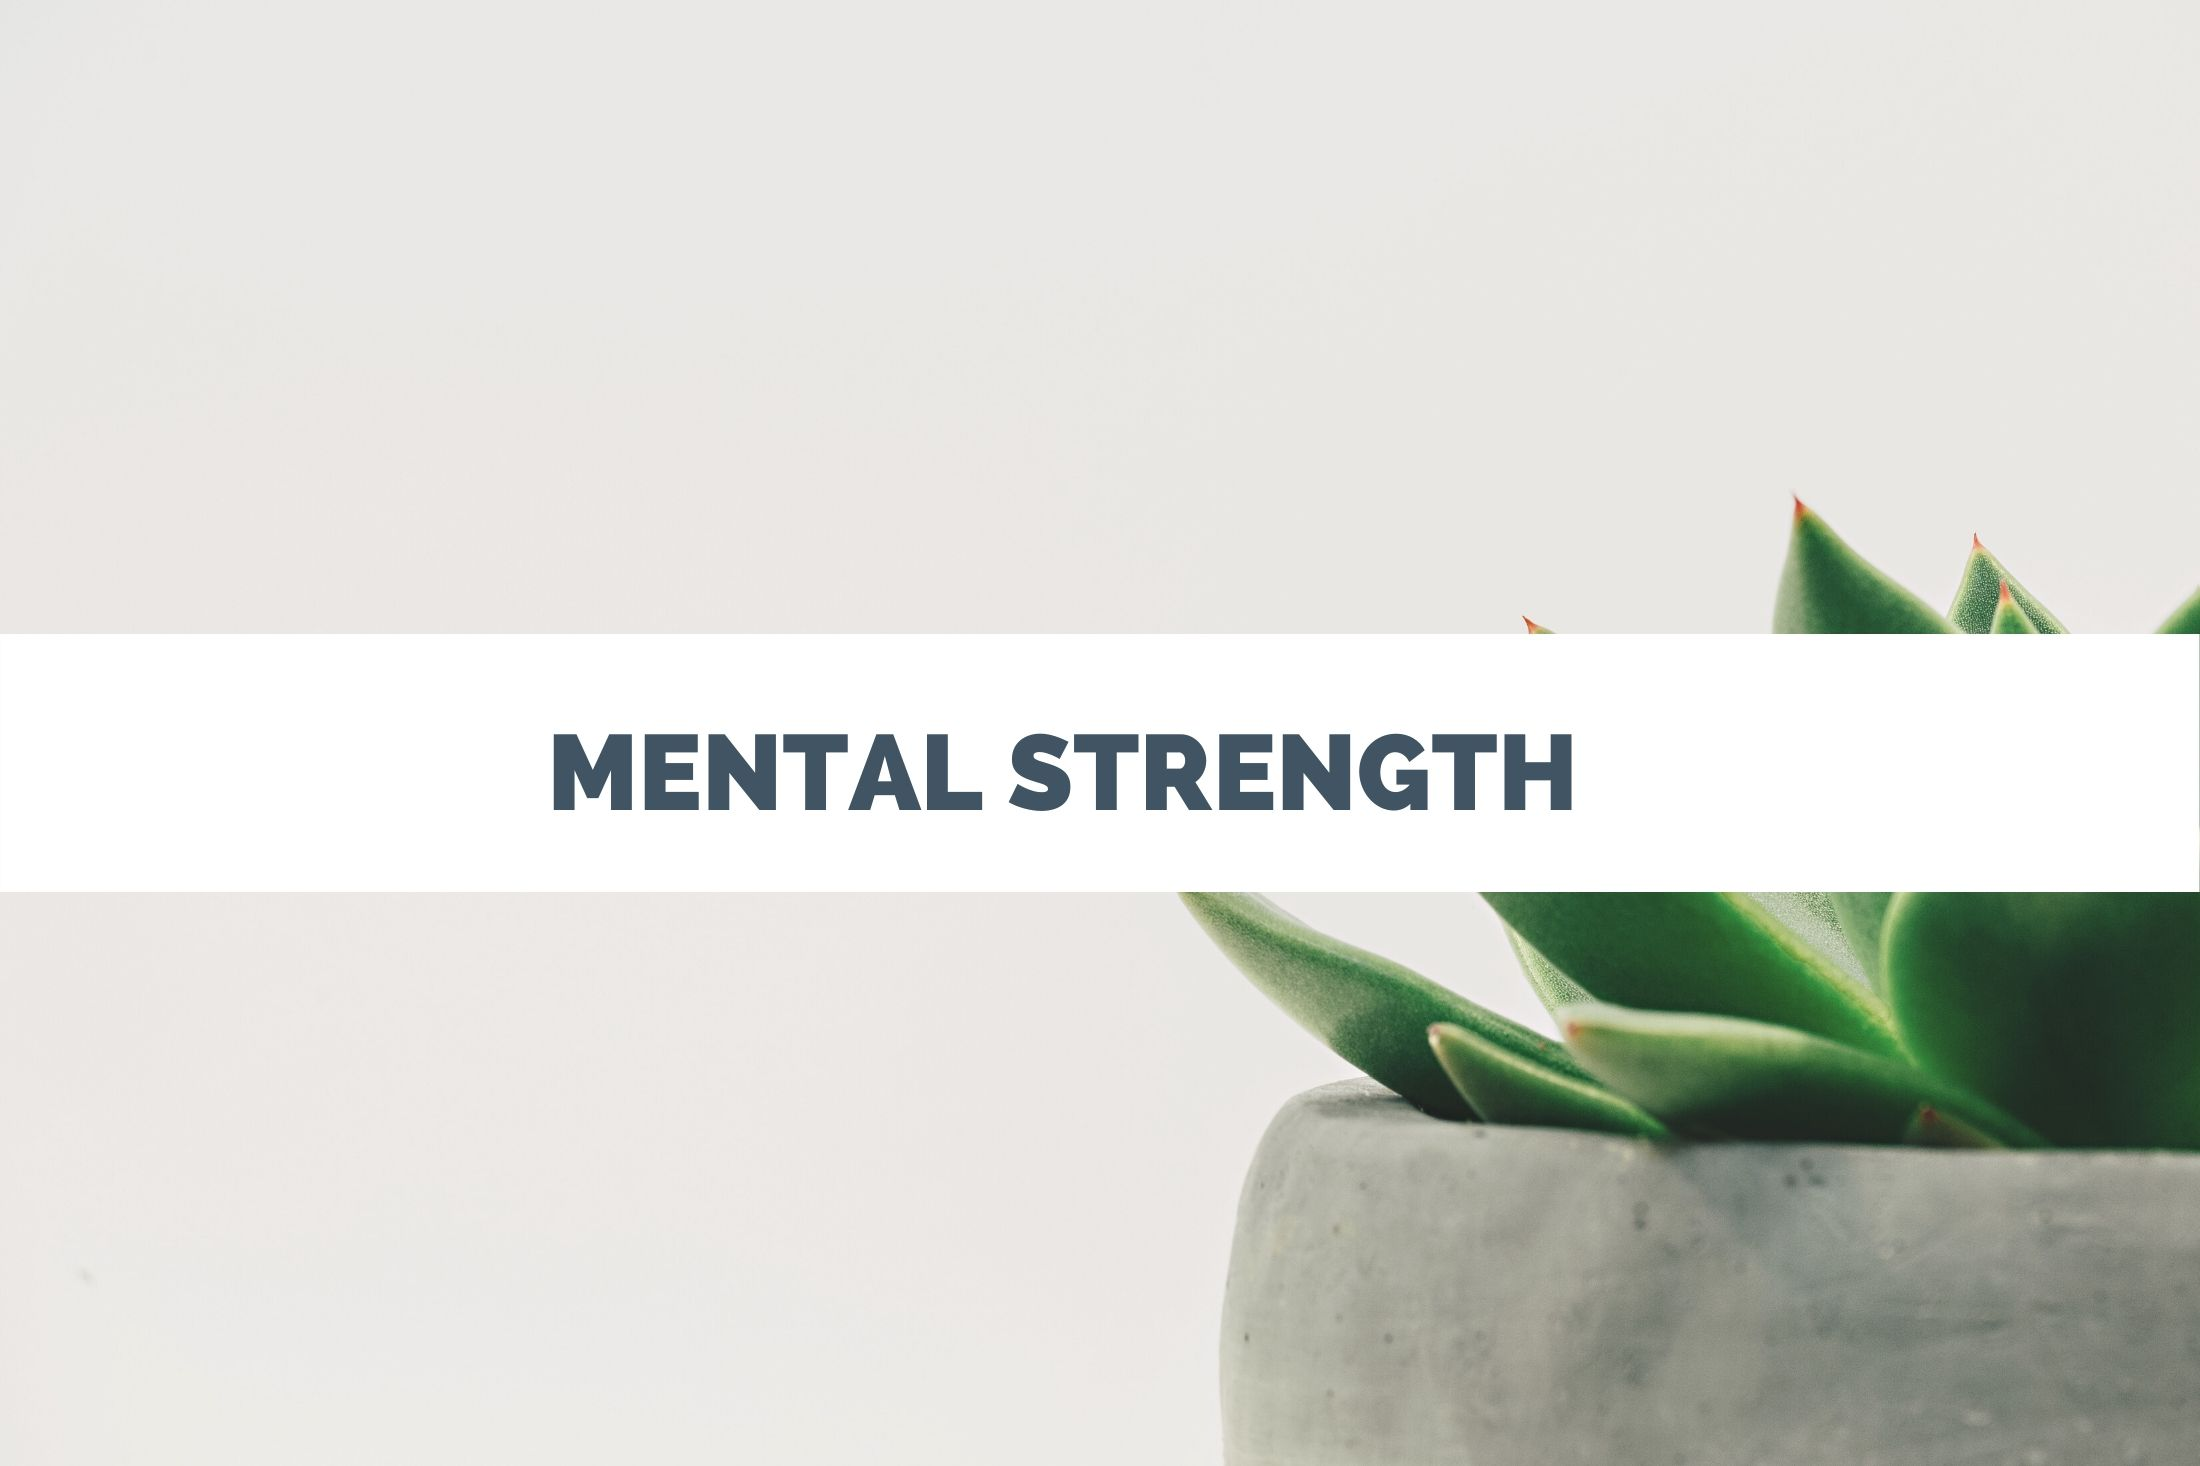 Mental strength, mental health, resilience, self care, leadership